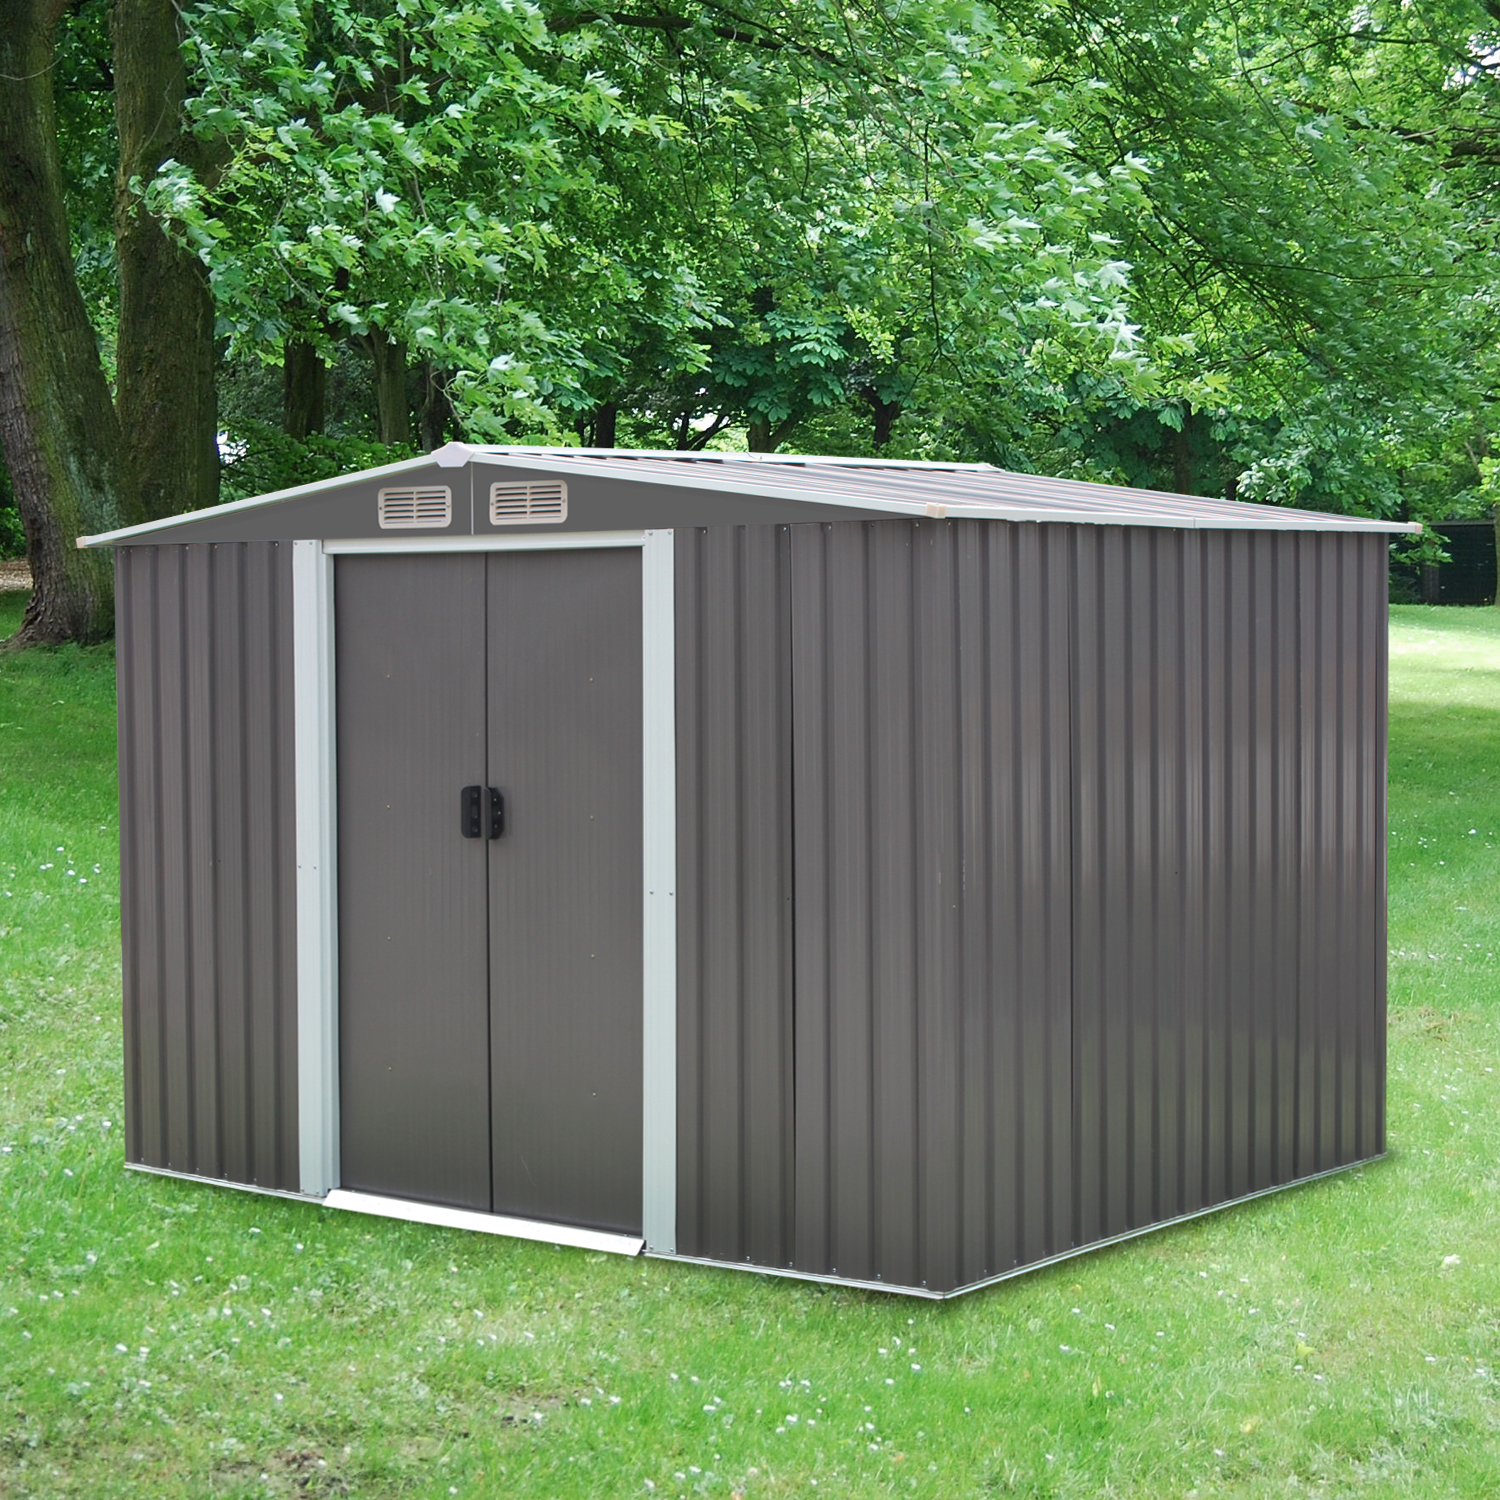 Kinbor 8' x 6' Outdoor Steel Garden Storage Utility Tool Shed Backyard Lawn Grey w/Door